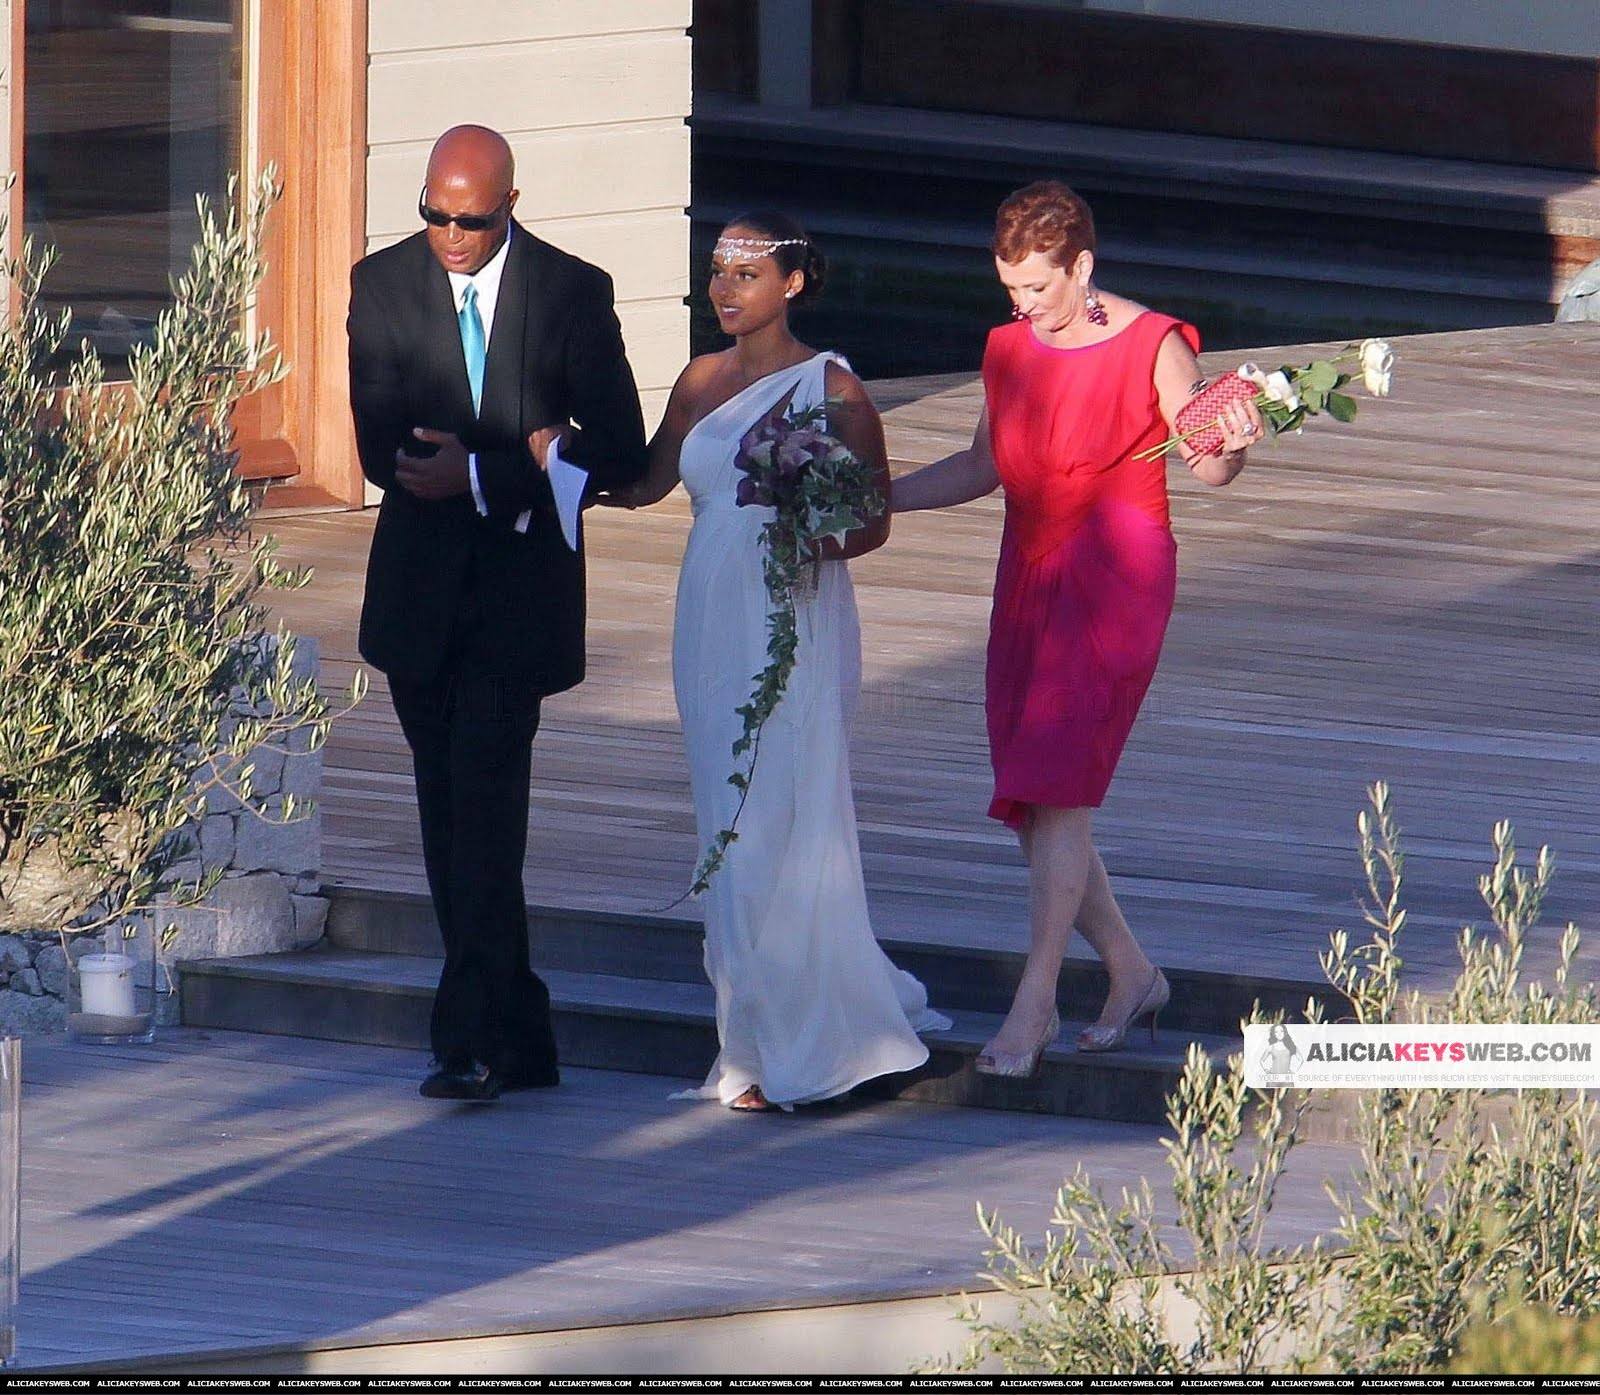 alicia keys wedding